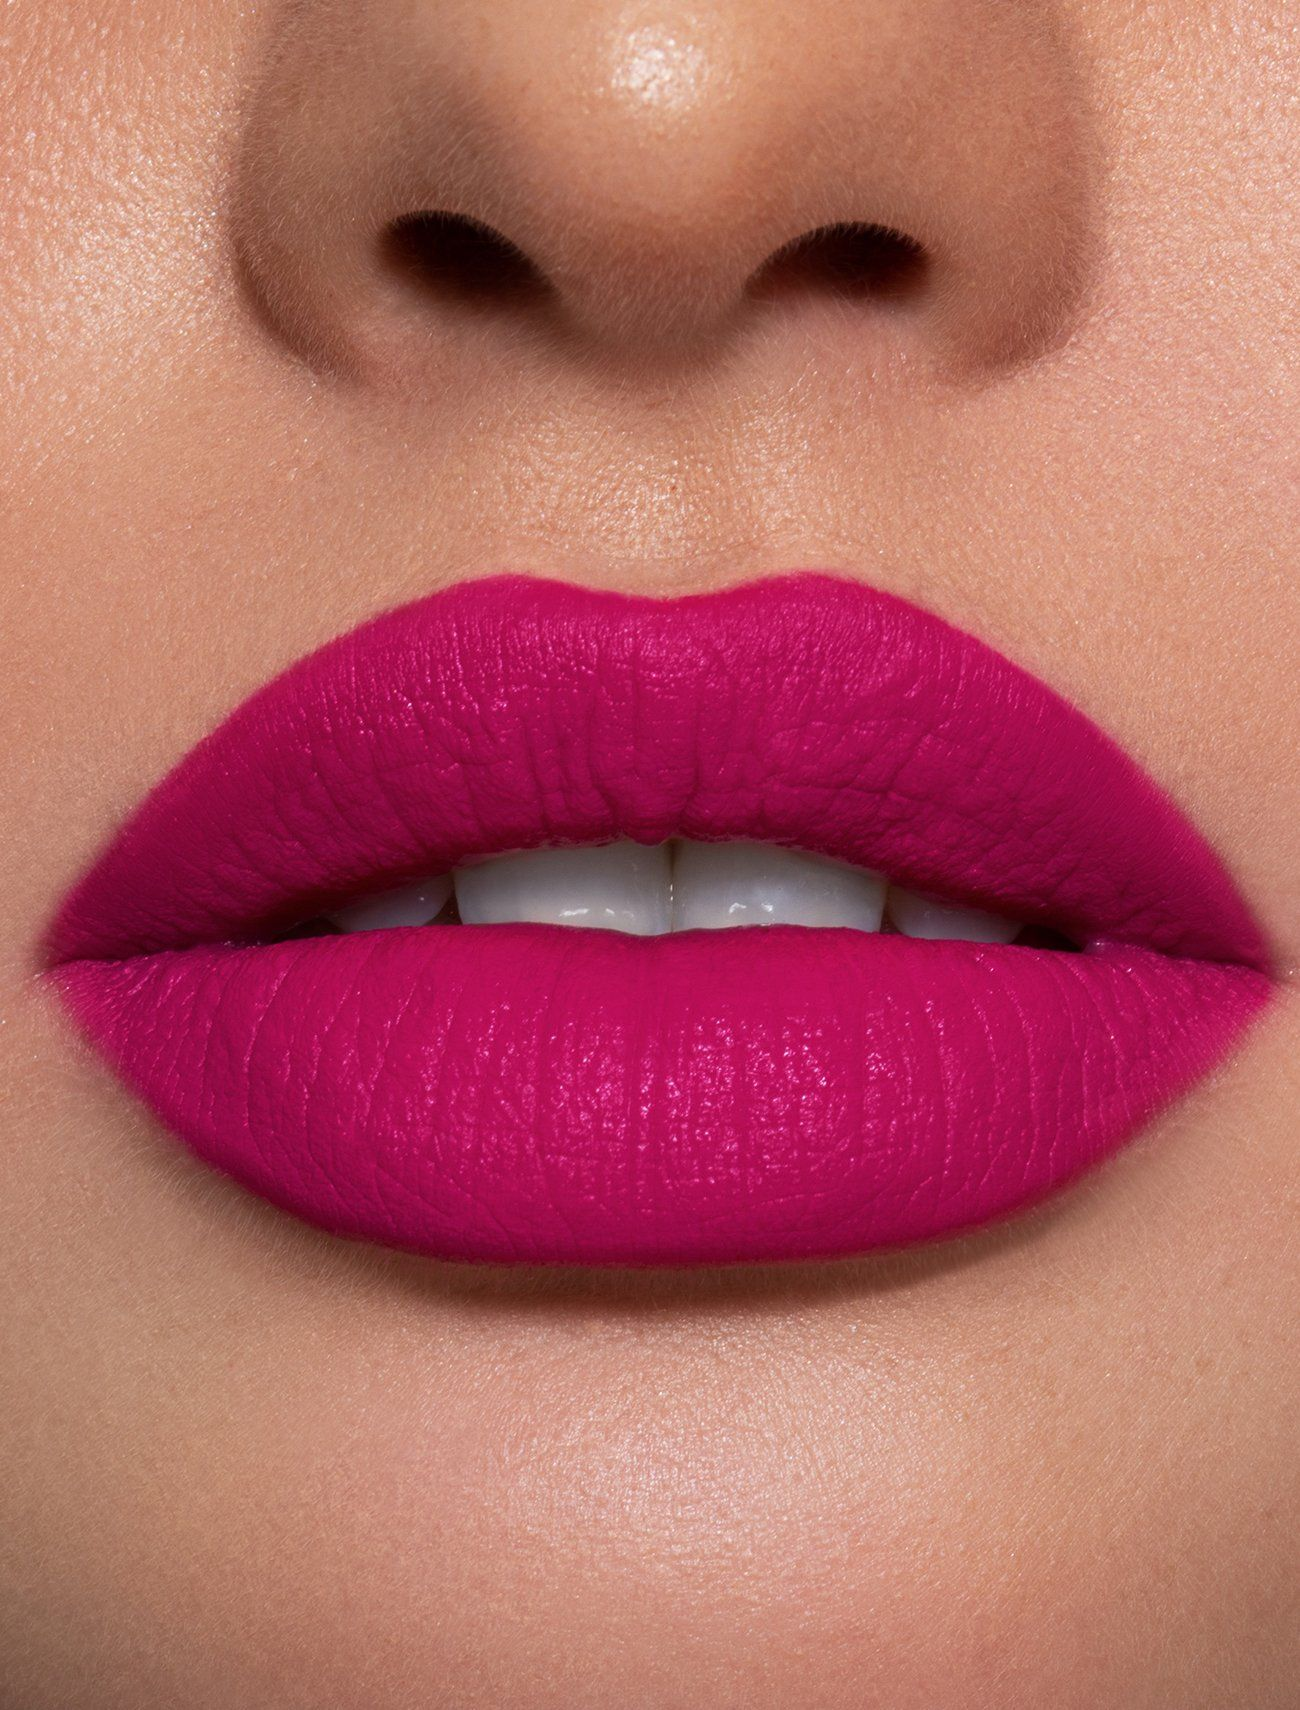 As We Age There Is A Tendency For Our Lips To Lose Their Youthful